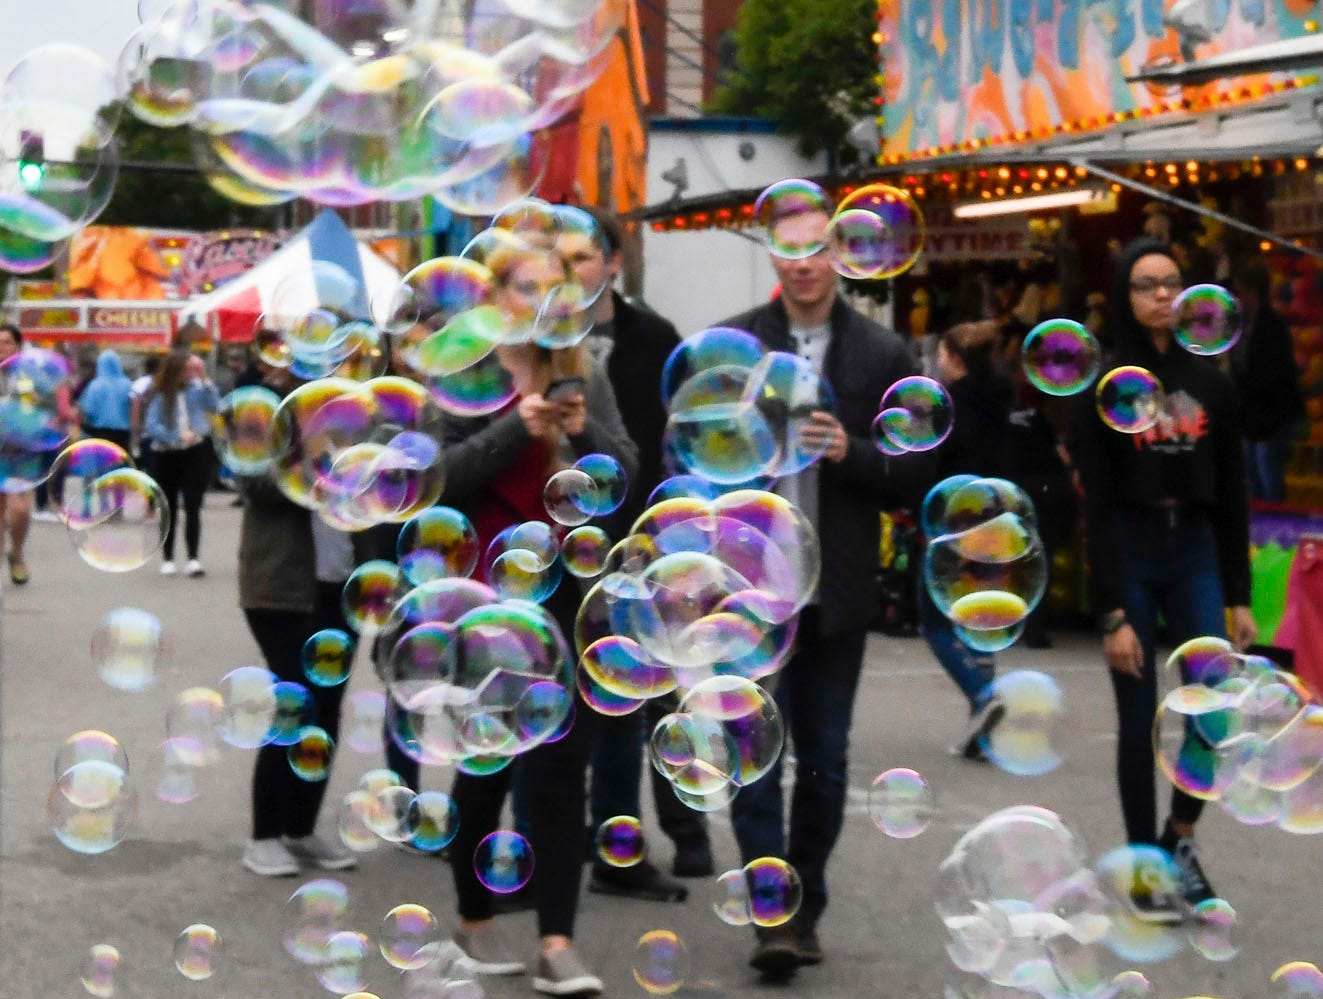 Tiny bubbles from a carnival hawker fill the air at the 32nd annual Breakfast Lions Club Tri-Fest in downtown Henderson Saturday, April 27, 2019.